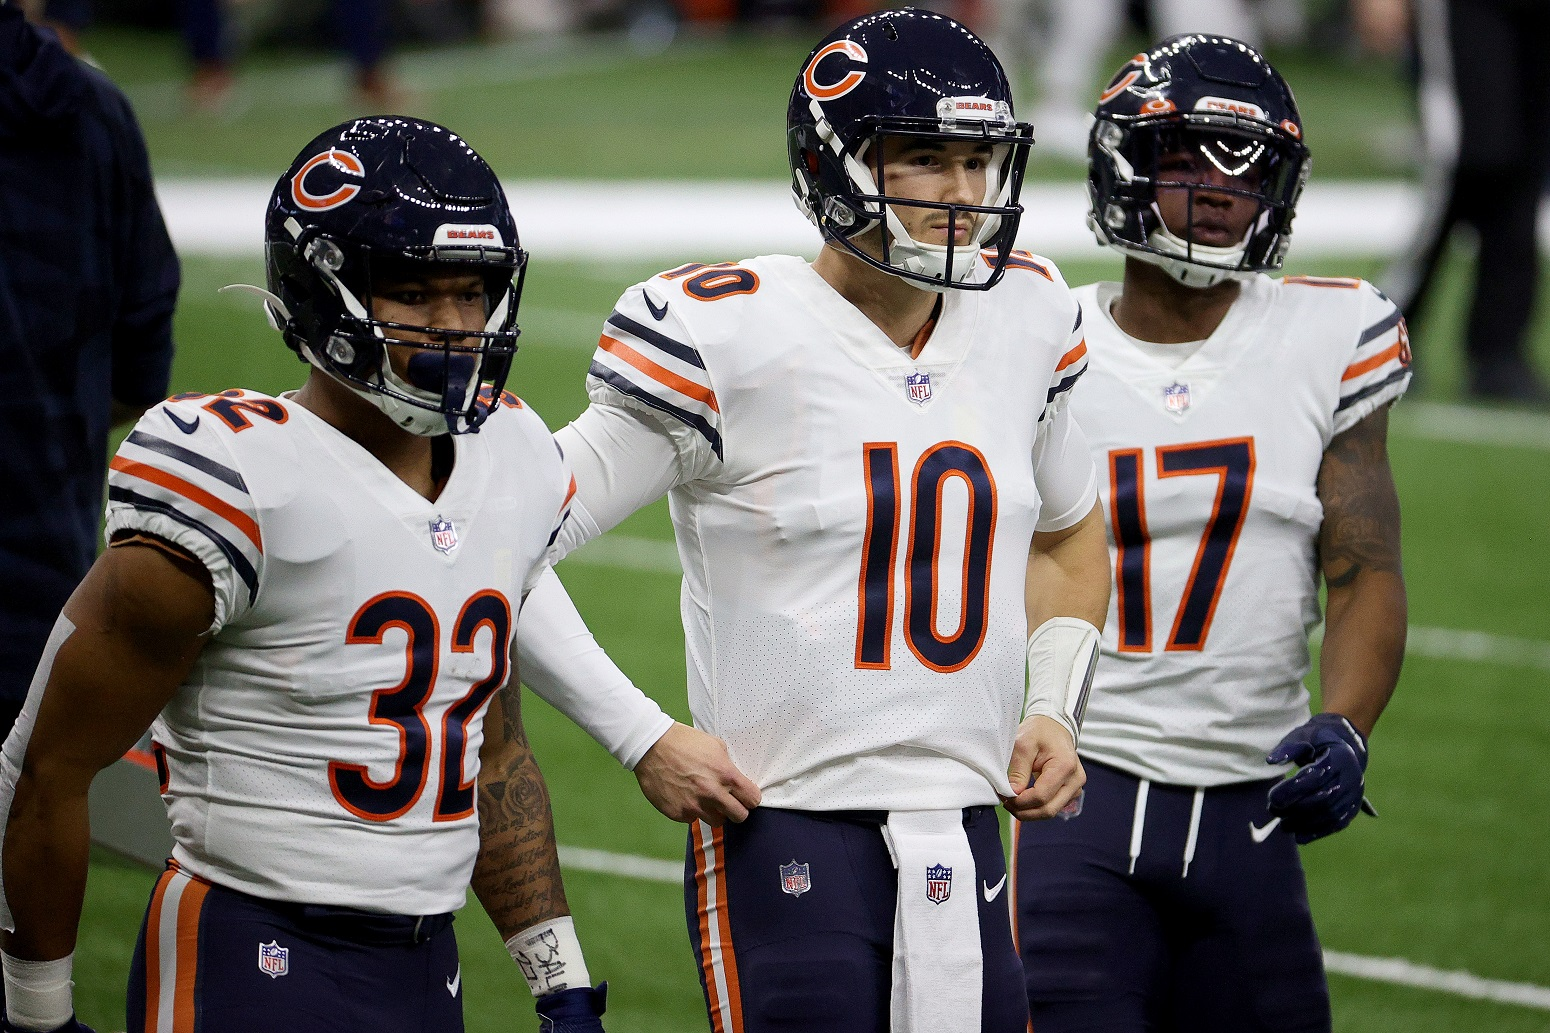 Mitchell Trubisky played last down Chicago Bears